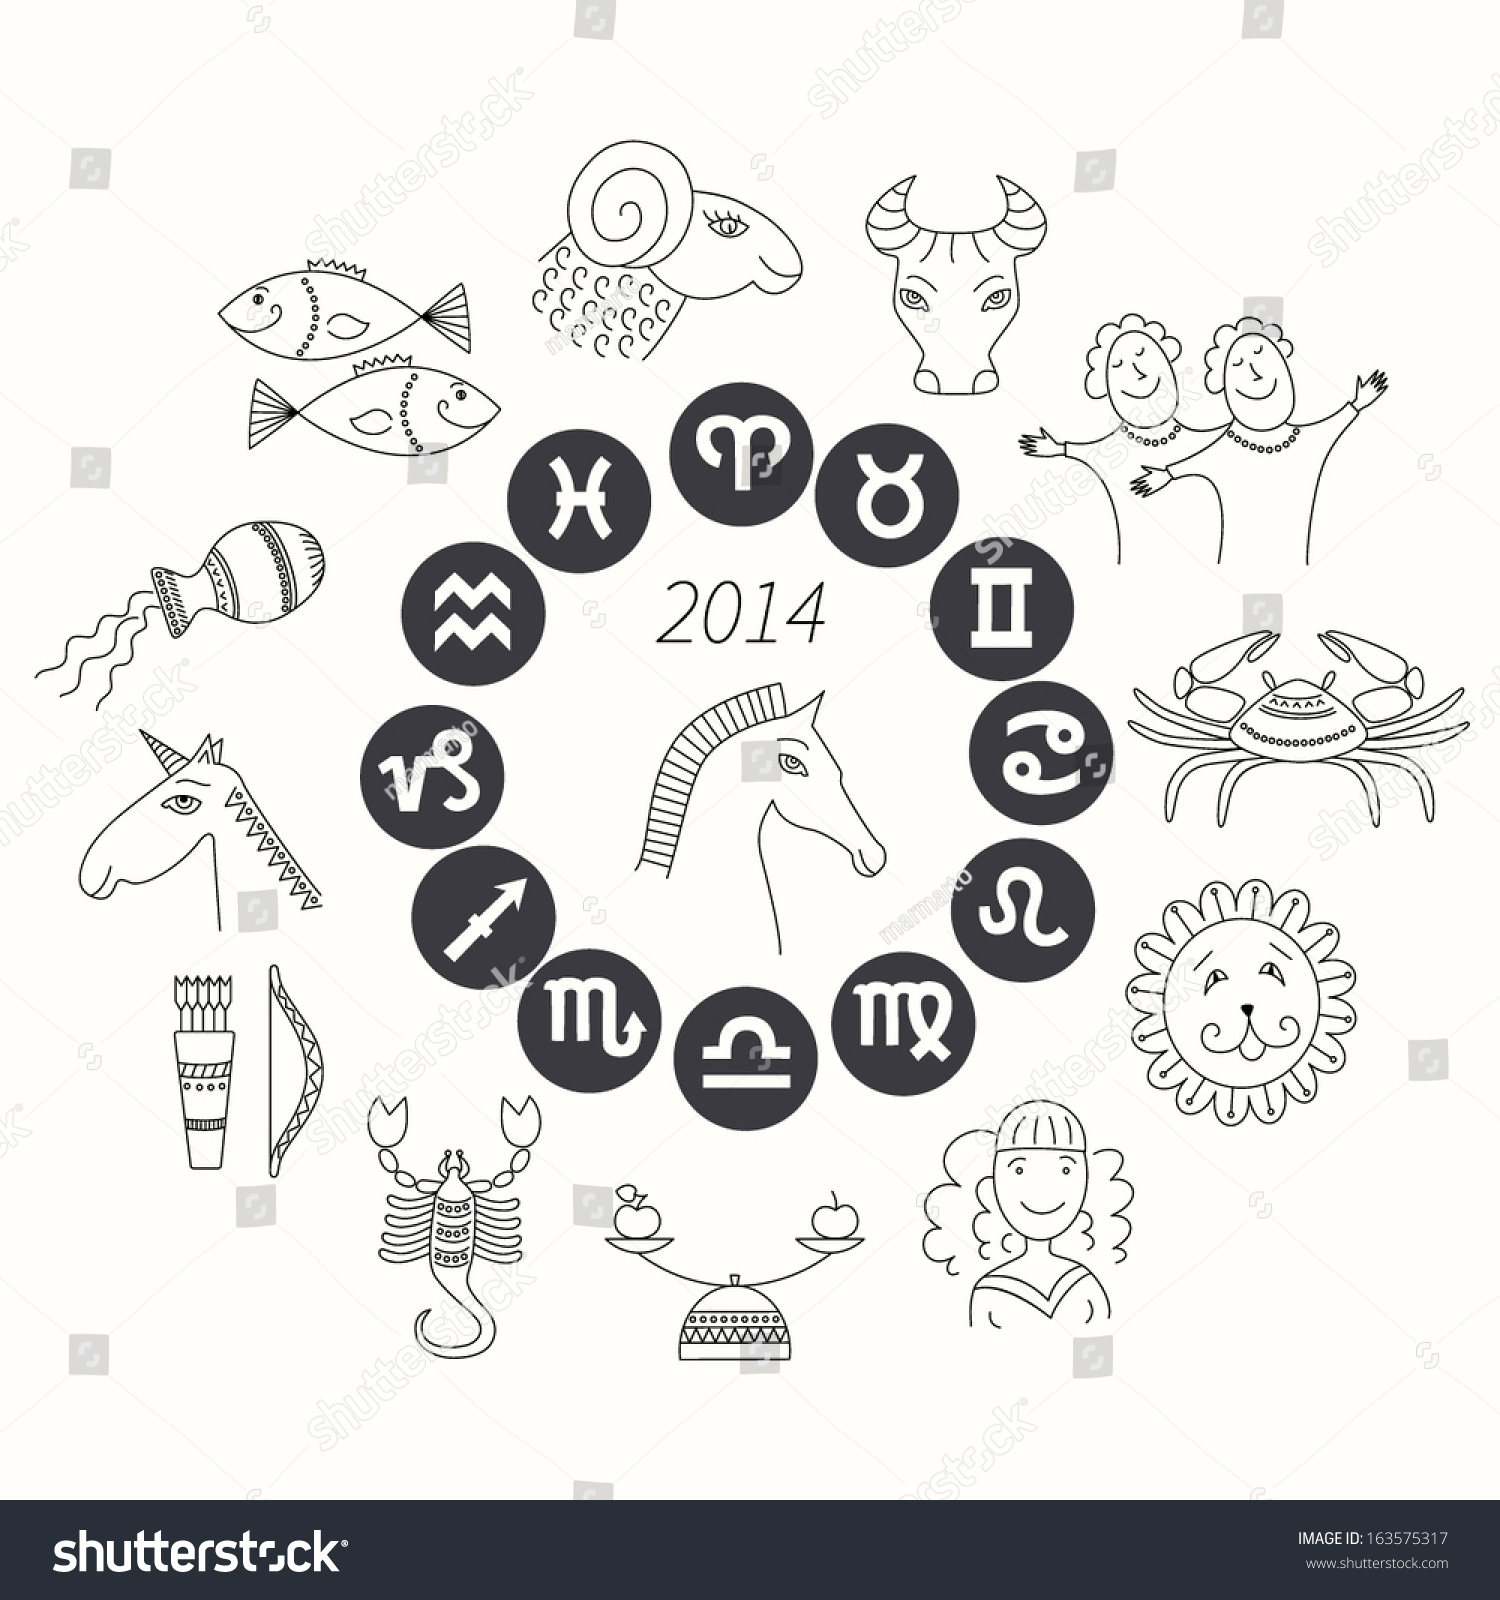 Set horoscope symbols zodiac signs on stock vector 163575317 set of horoscope symbols zodiac signs on white background horoscope for 2014 buycottarizona